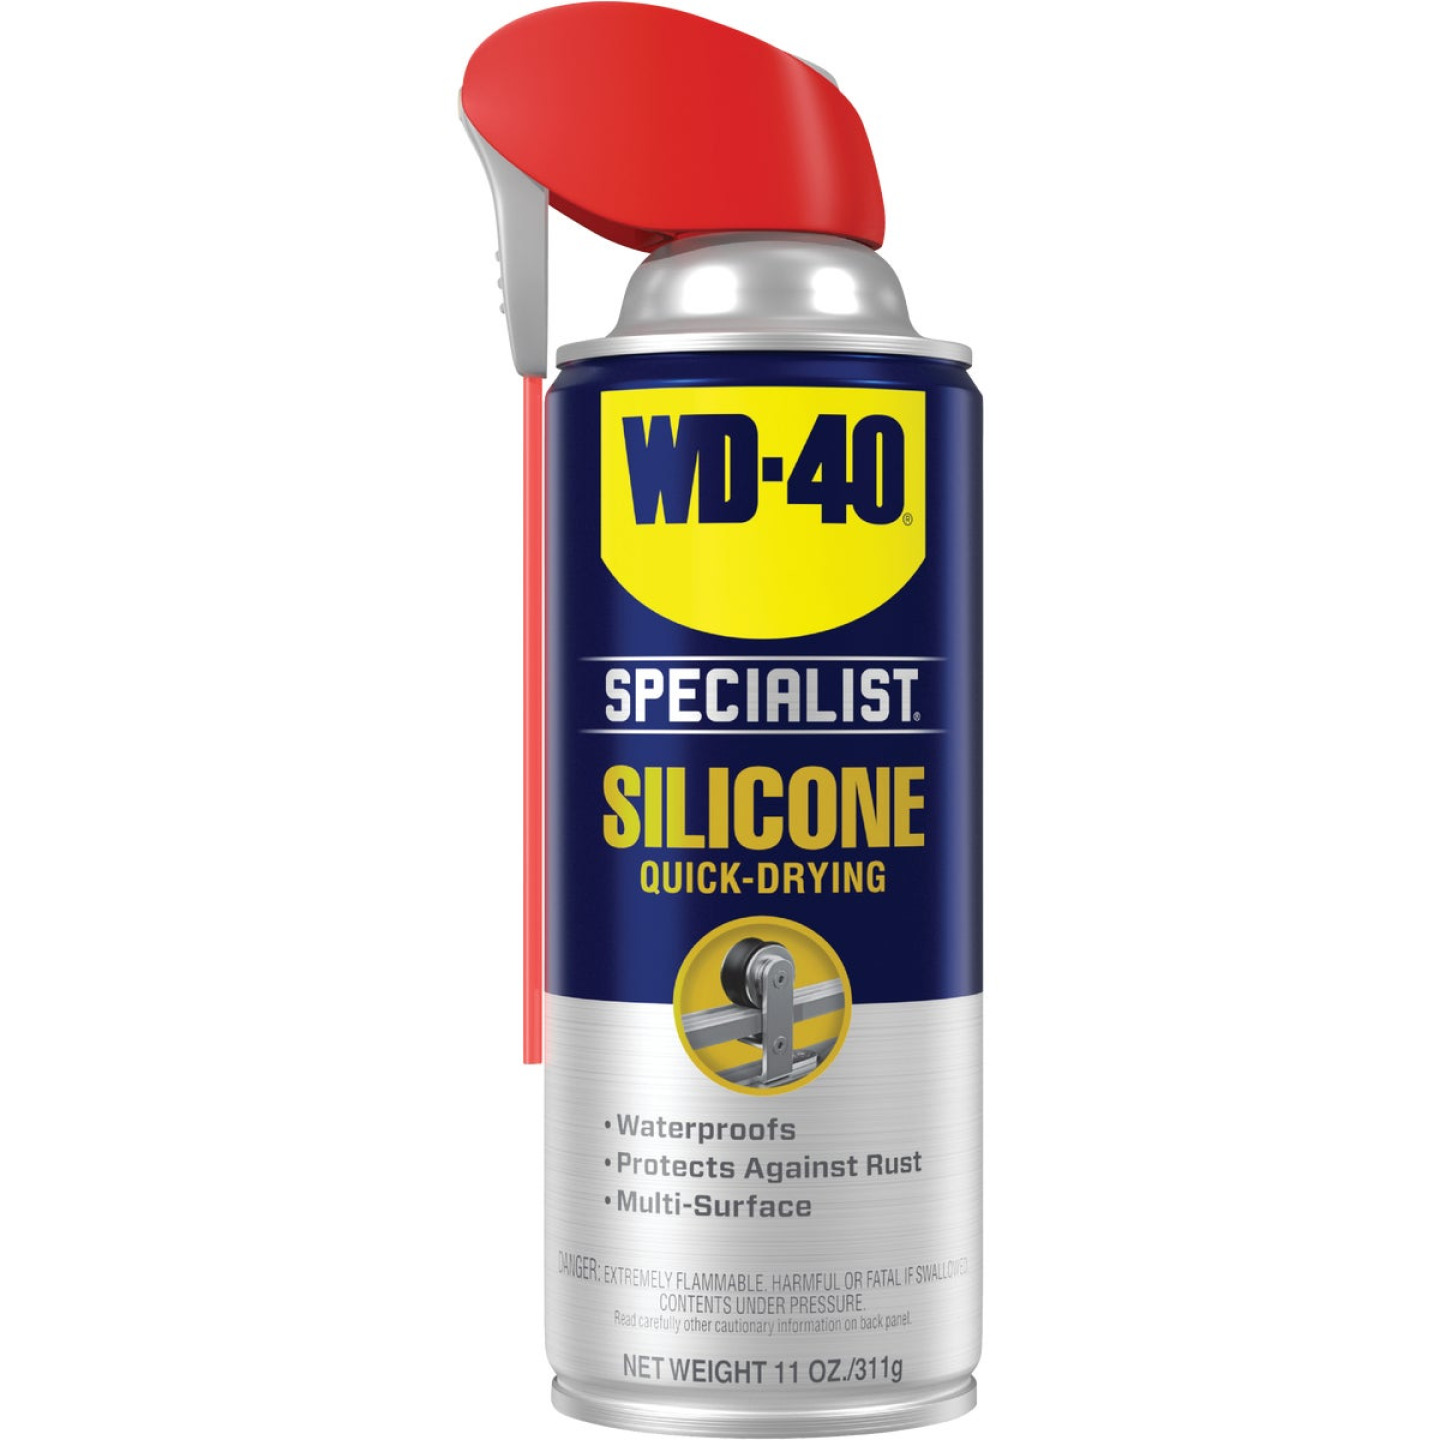 WD-40 Specialist 11 Oz. Aerosol Water-Resistant Silicone Lubricant Image 1